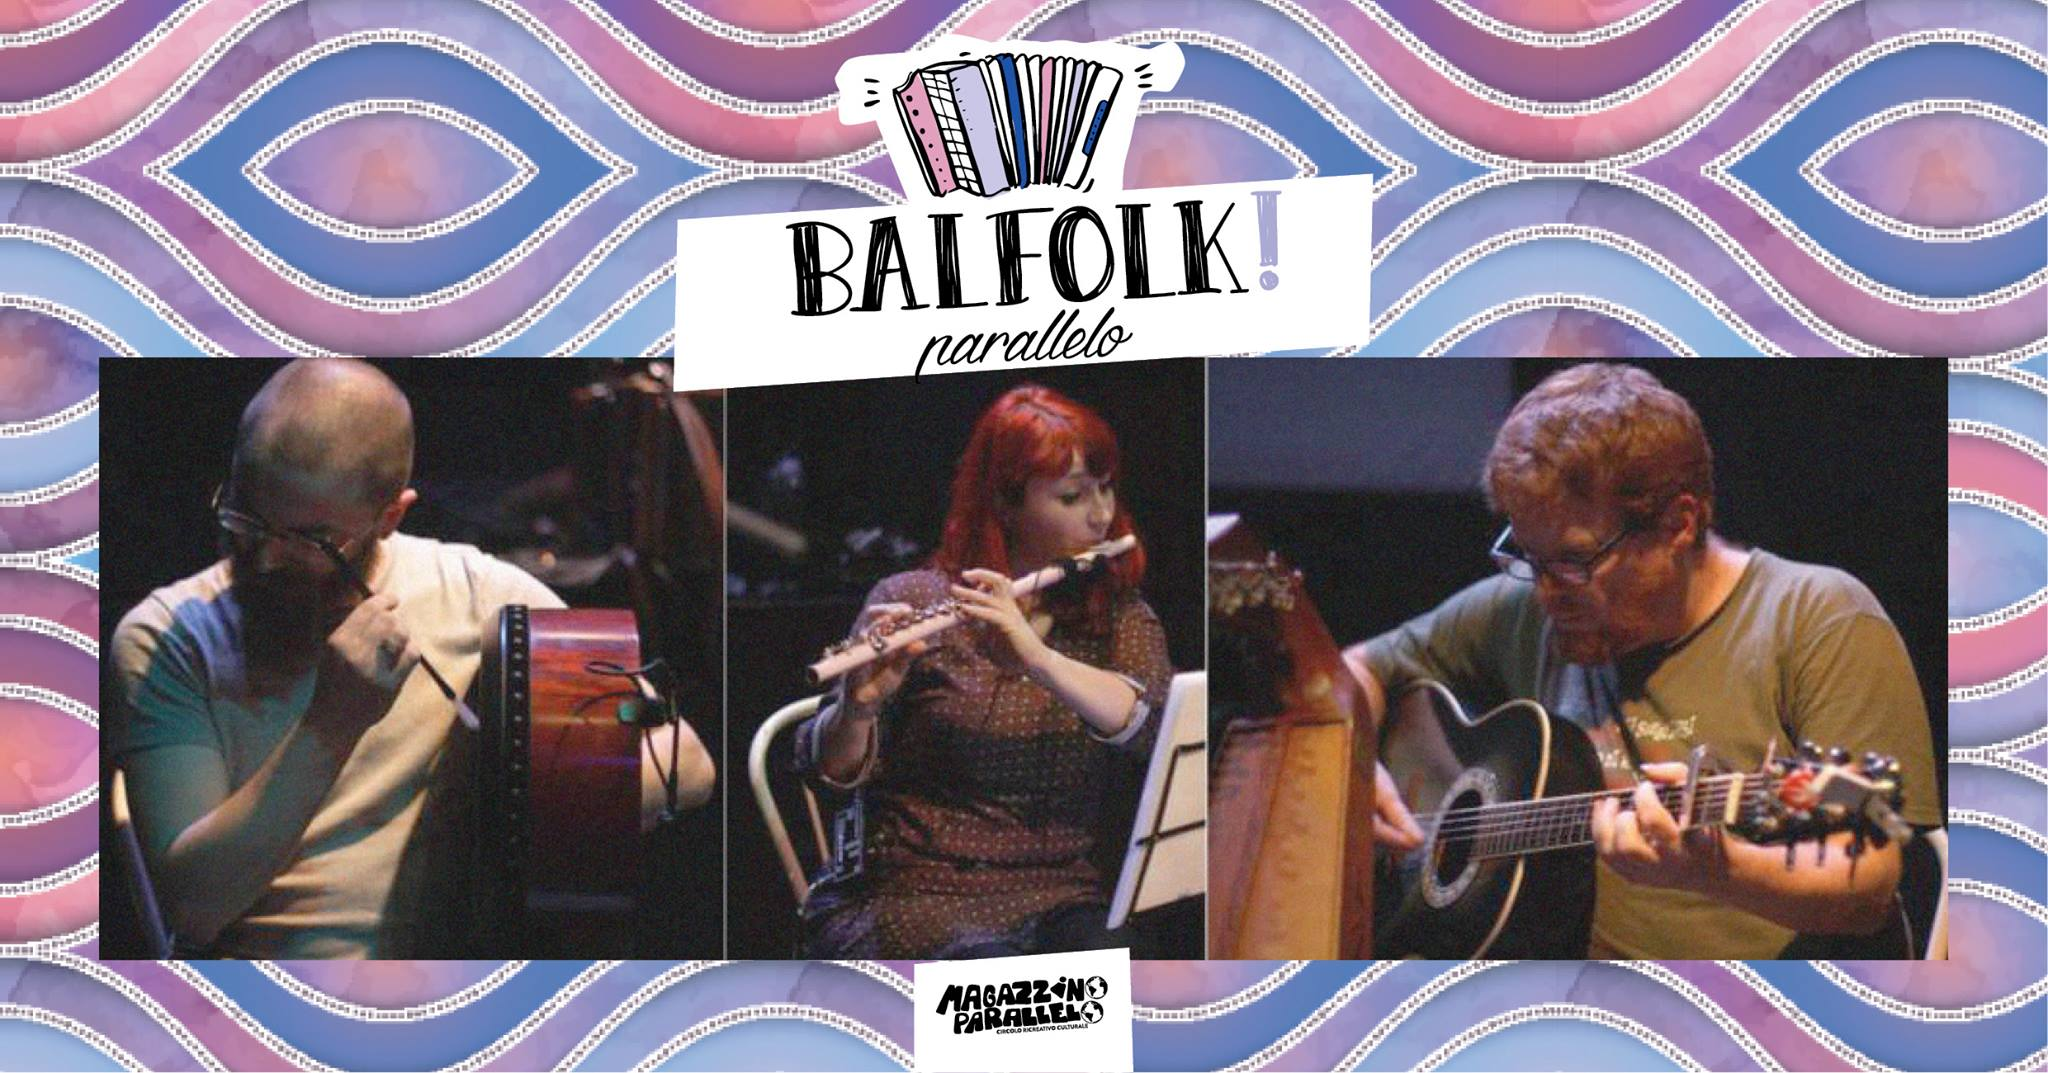 Balfolk Parallelo / DaDgad Irish & Balfolk live